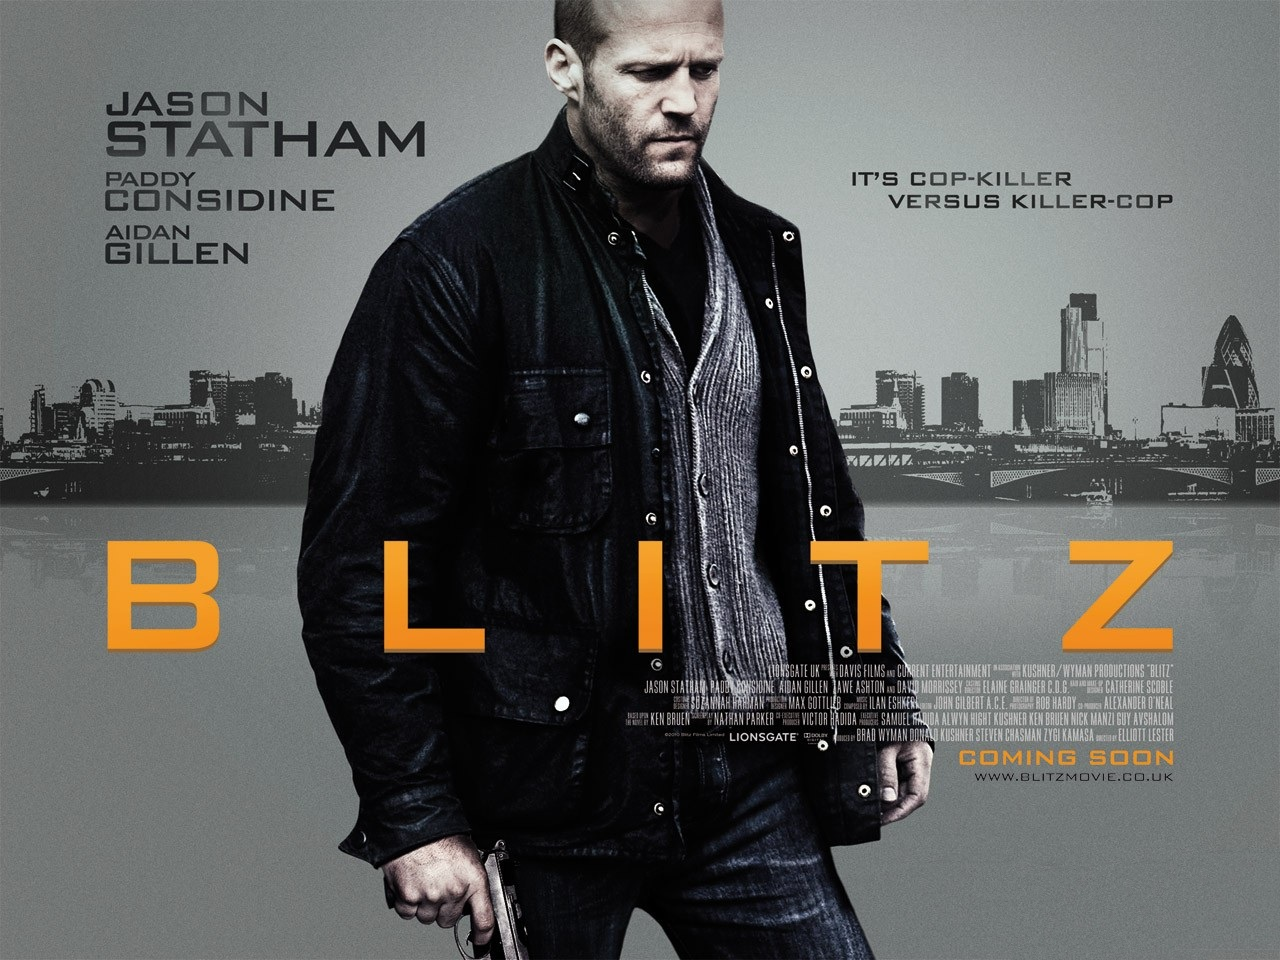 Red Band Trailer for 'Blitz' starring the Bald Badass, Jason Statham